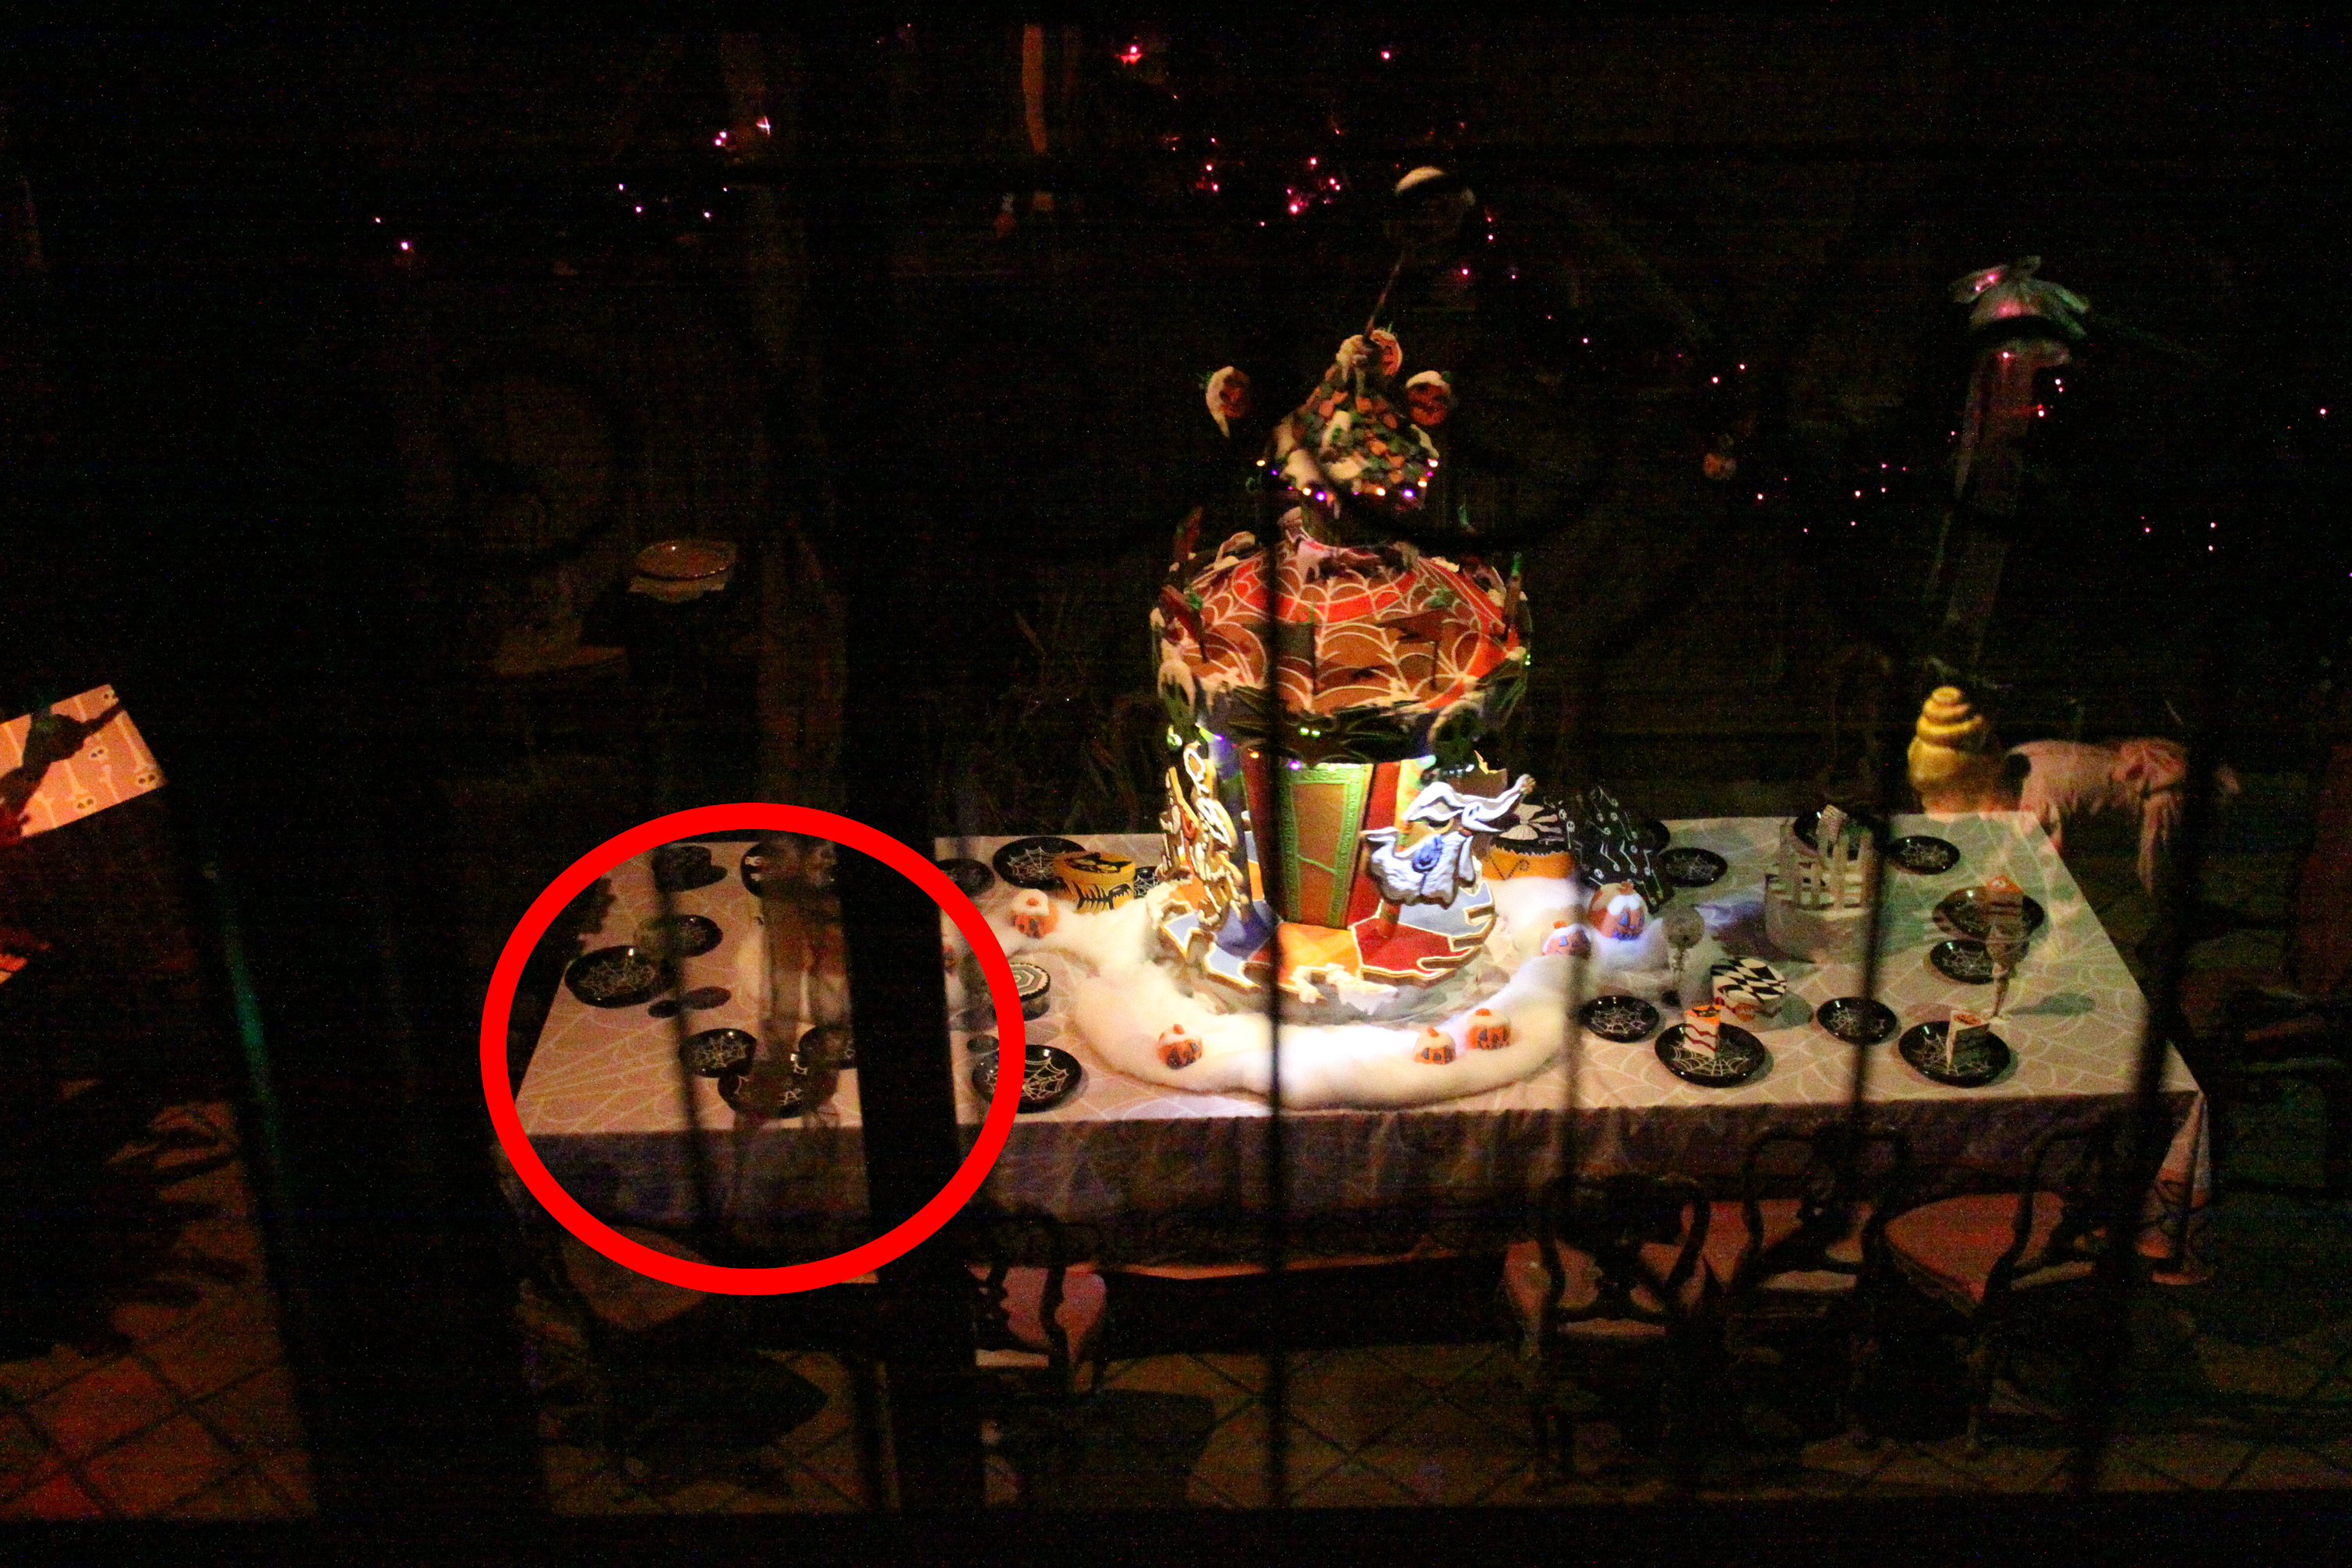 haunted mansion dining room table hidden mickey, dlr image